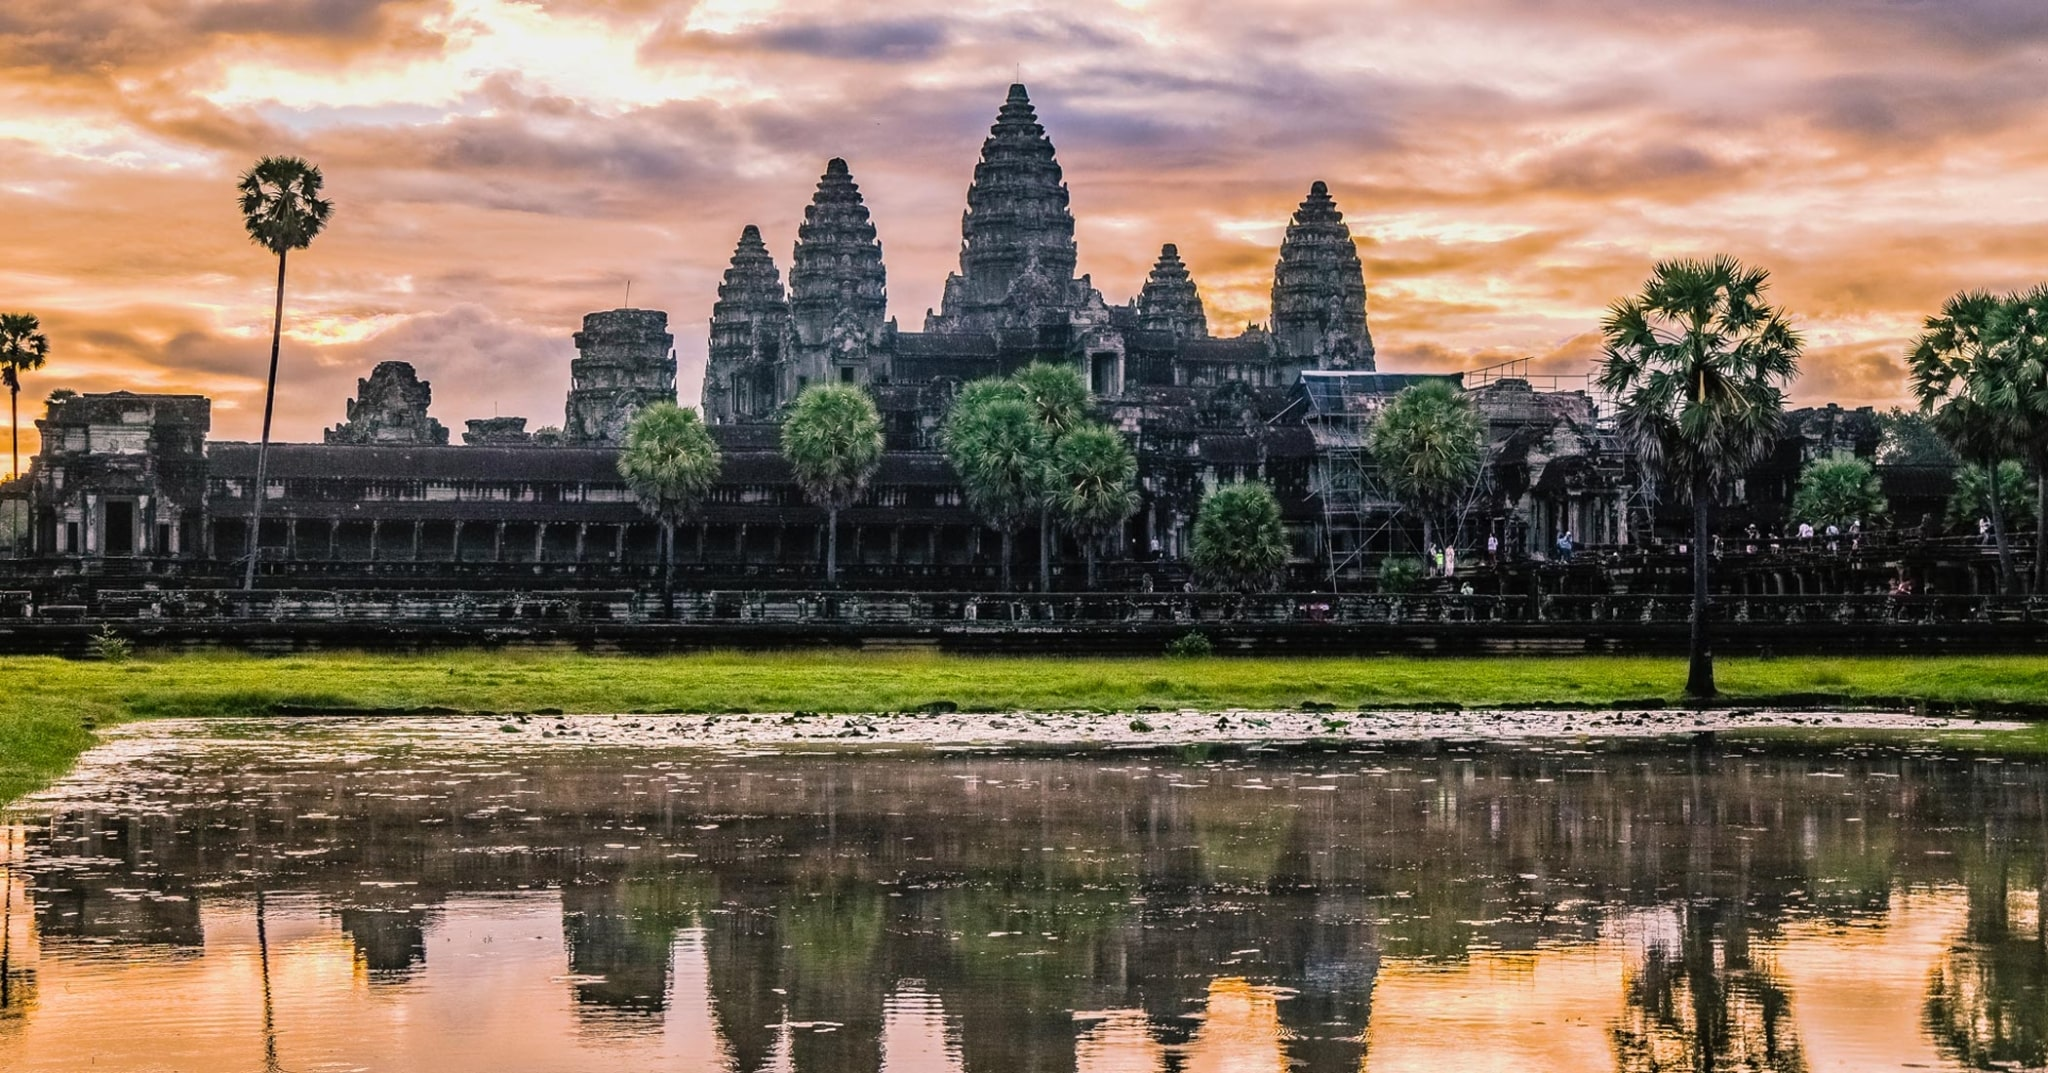 Sunrise angkor wat photography